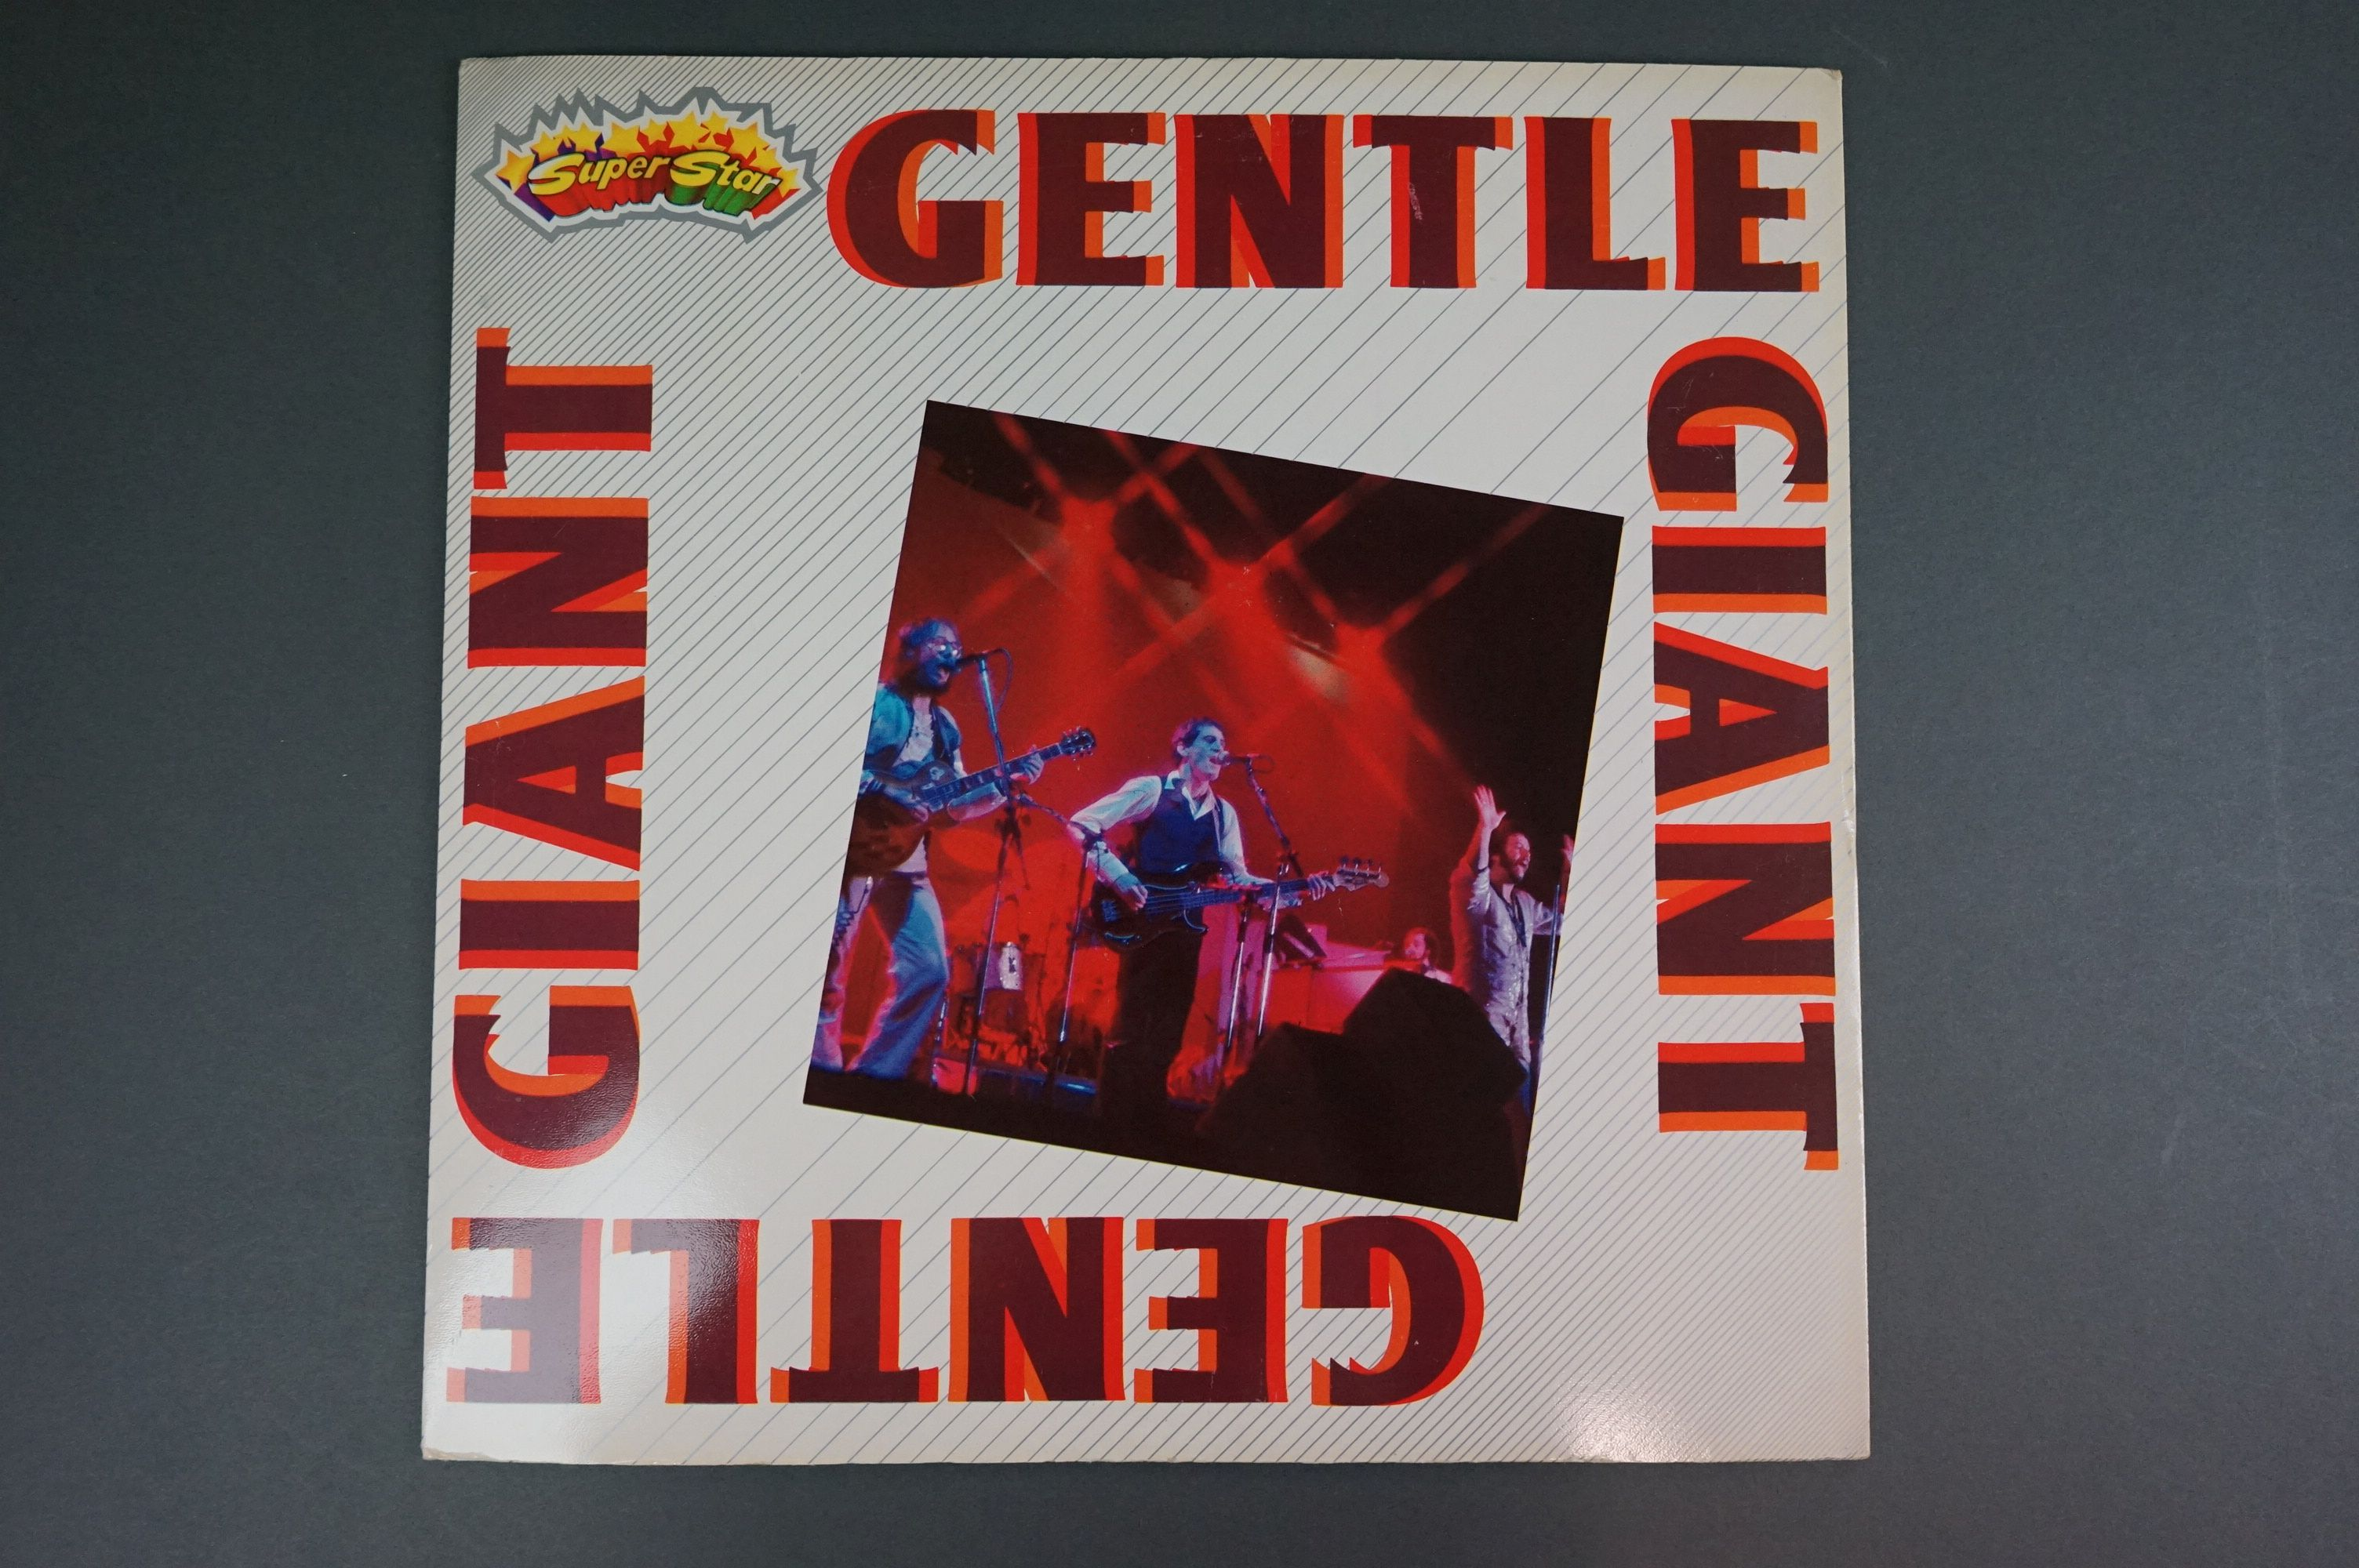 Vinyl - Two Gentle Giant LPs to include In A Glasshouse WWA002 Photograph card and printed inners, - Image 7 of 10